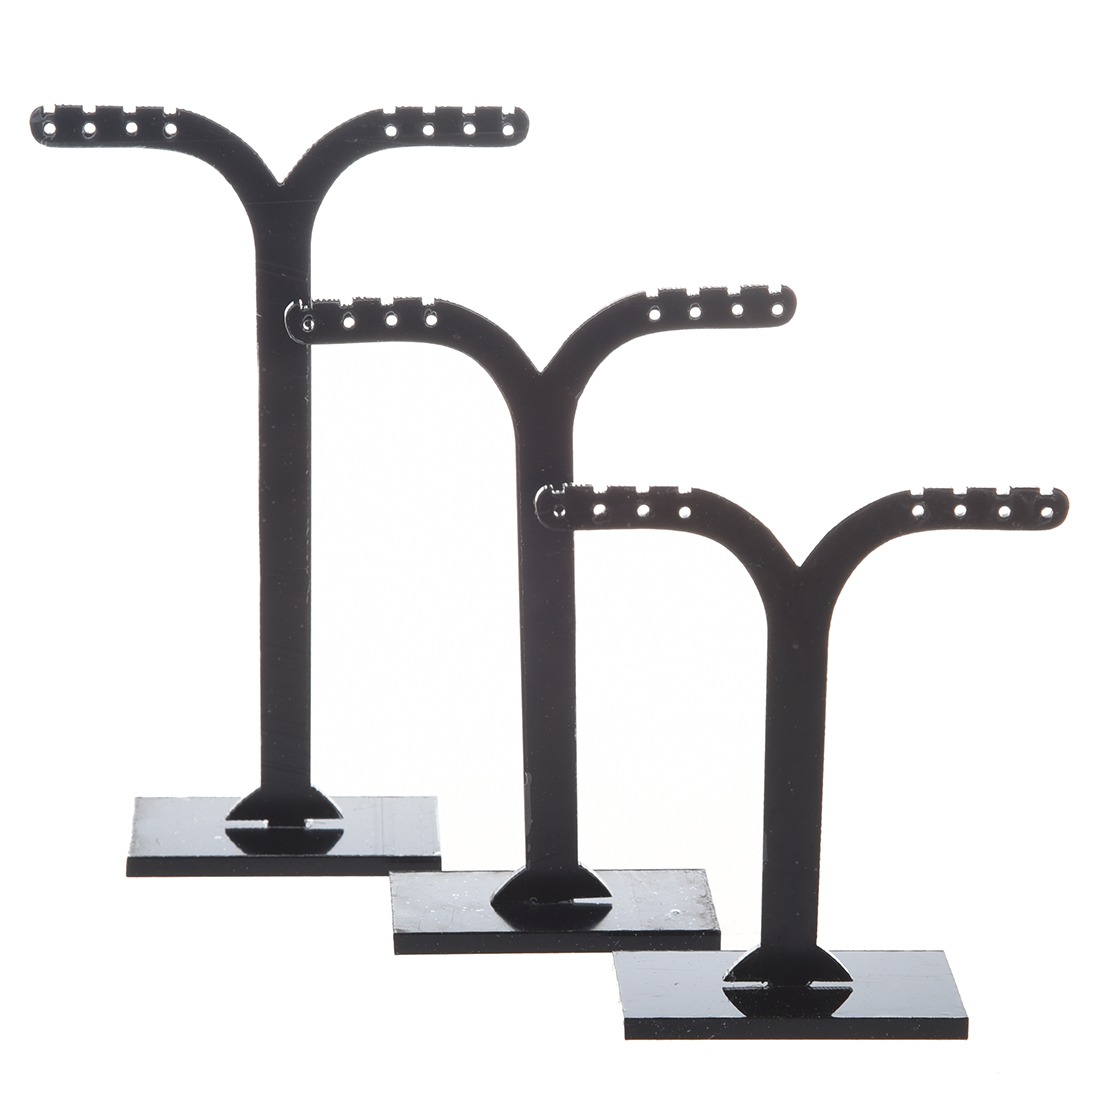 3 X Display Support Displaying Earrings Detachable Black And In Acrylic